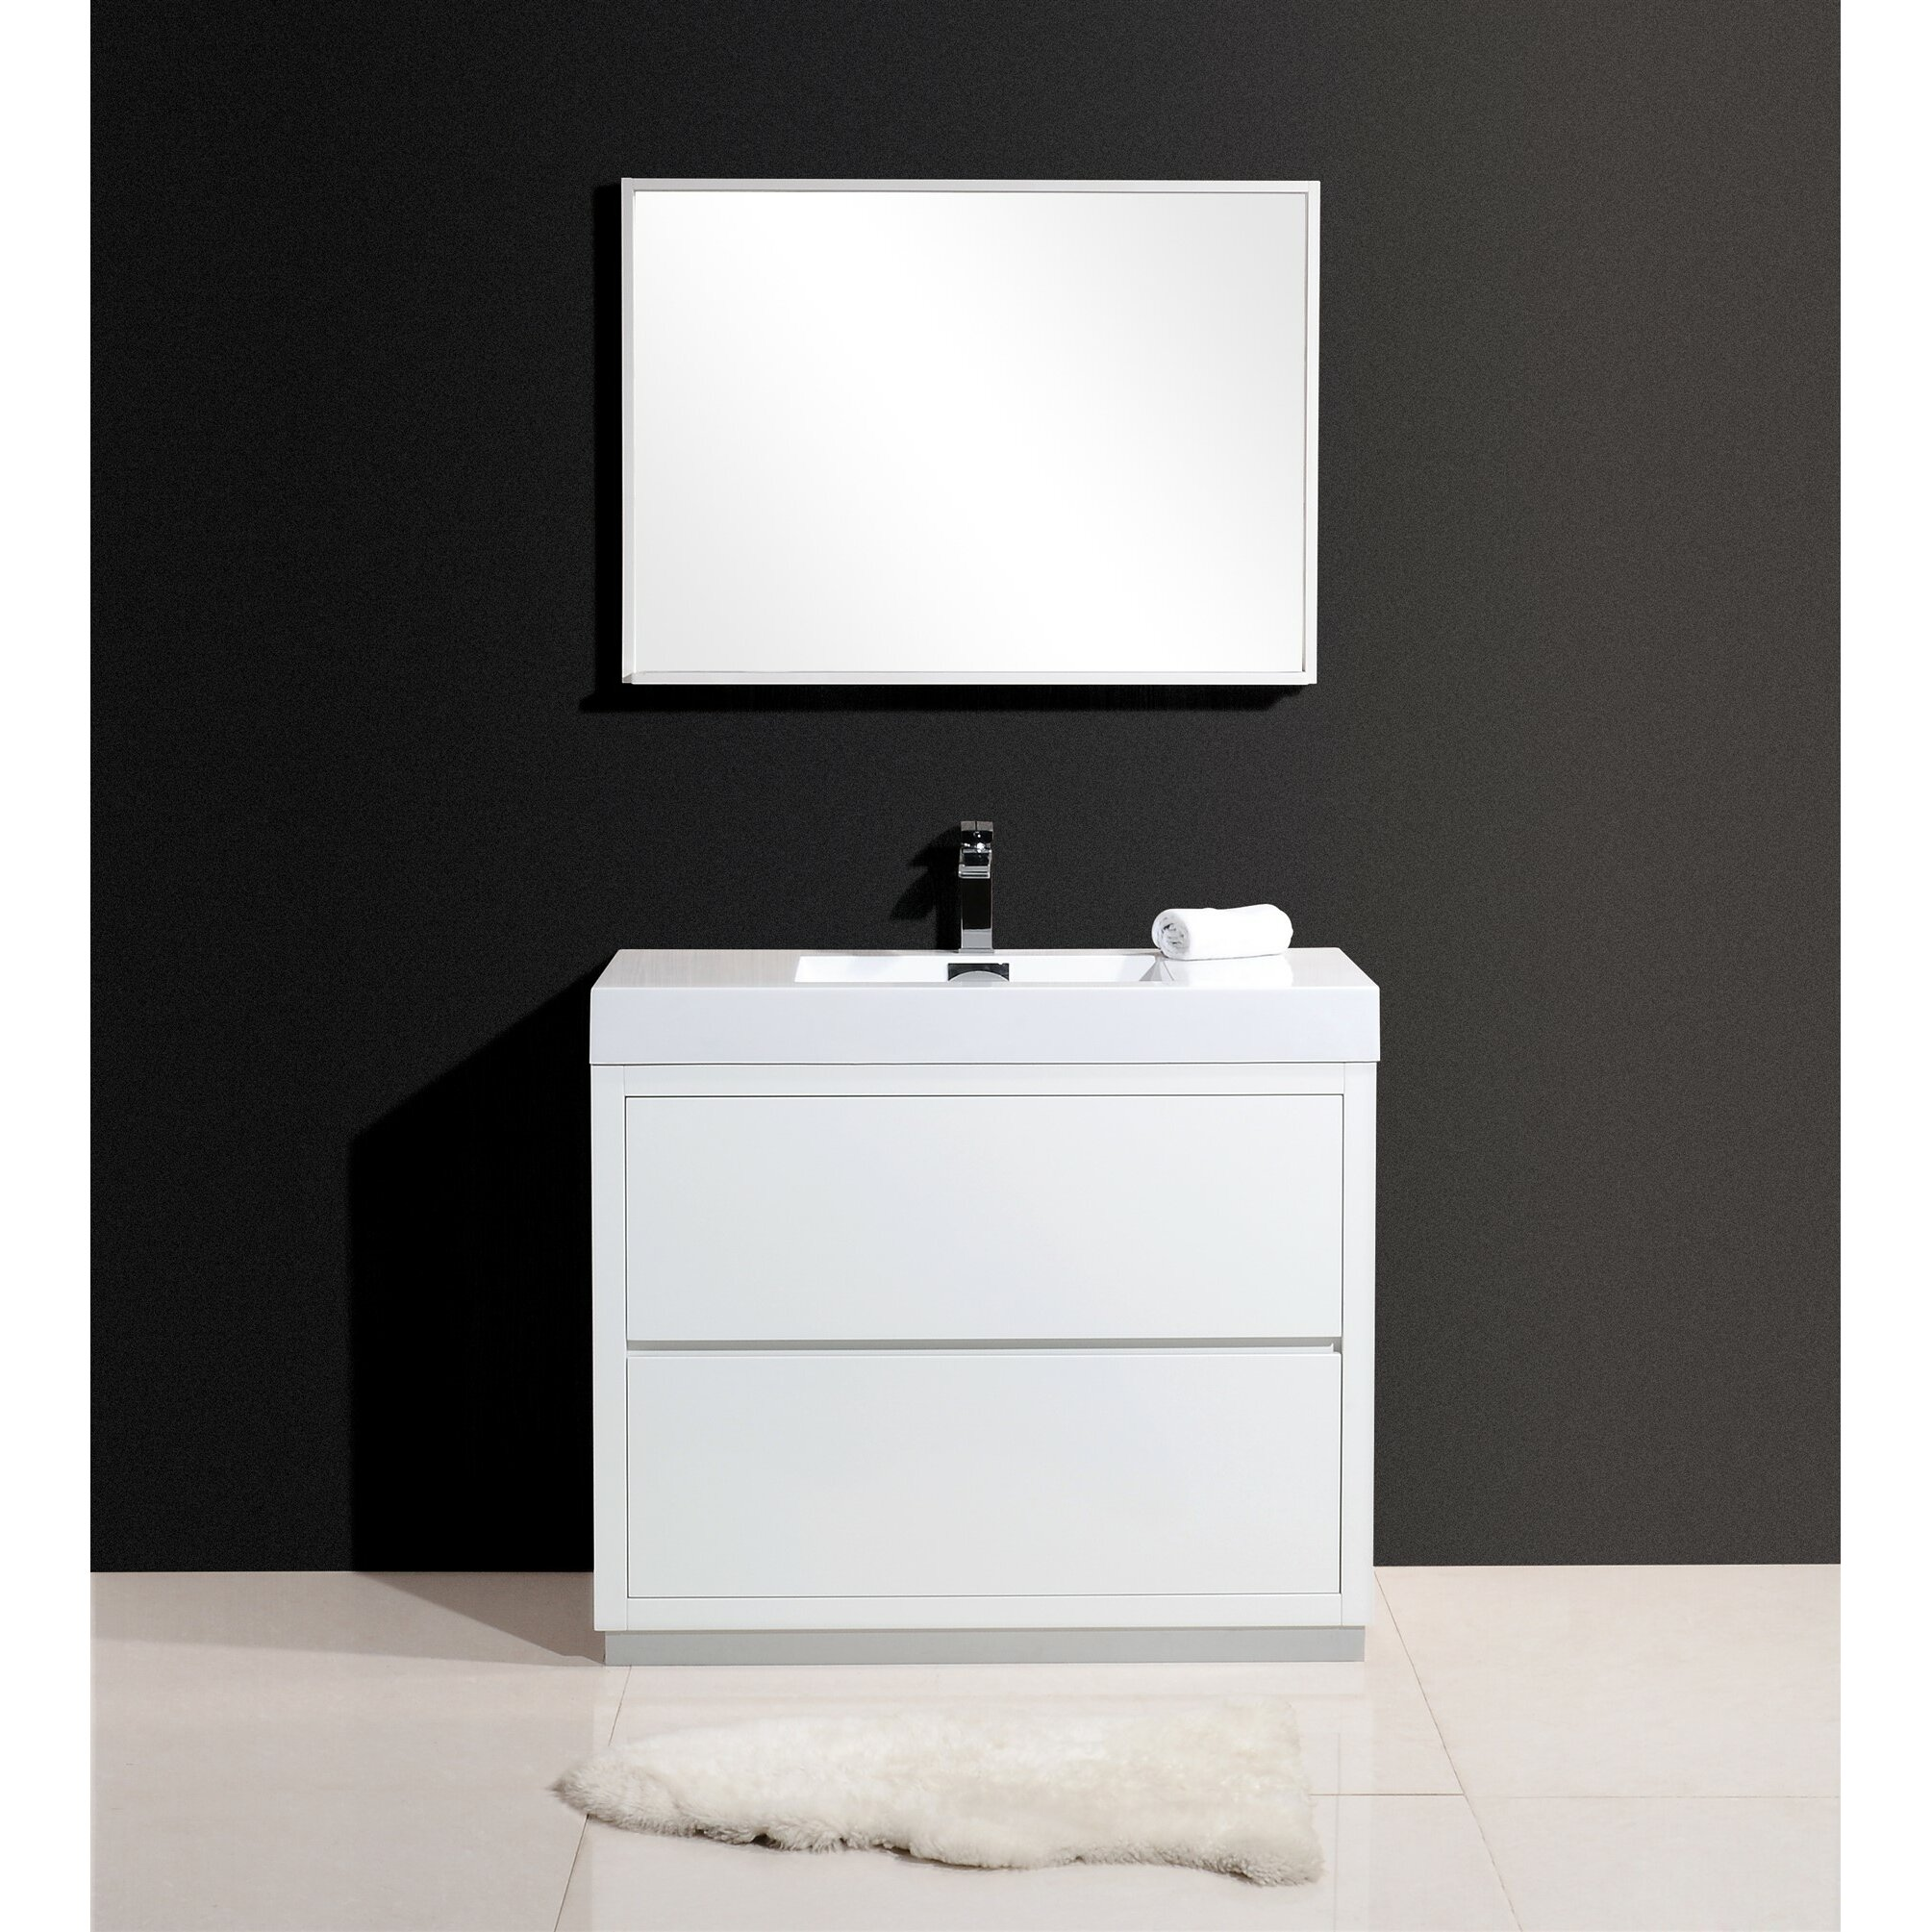 Kube bath bliss 40 single free standing modern bathroom vanity set reviews wayfair - Kona modern bathroom vanity set ...